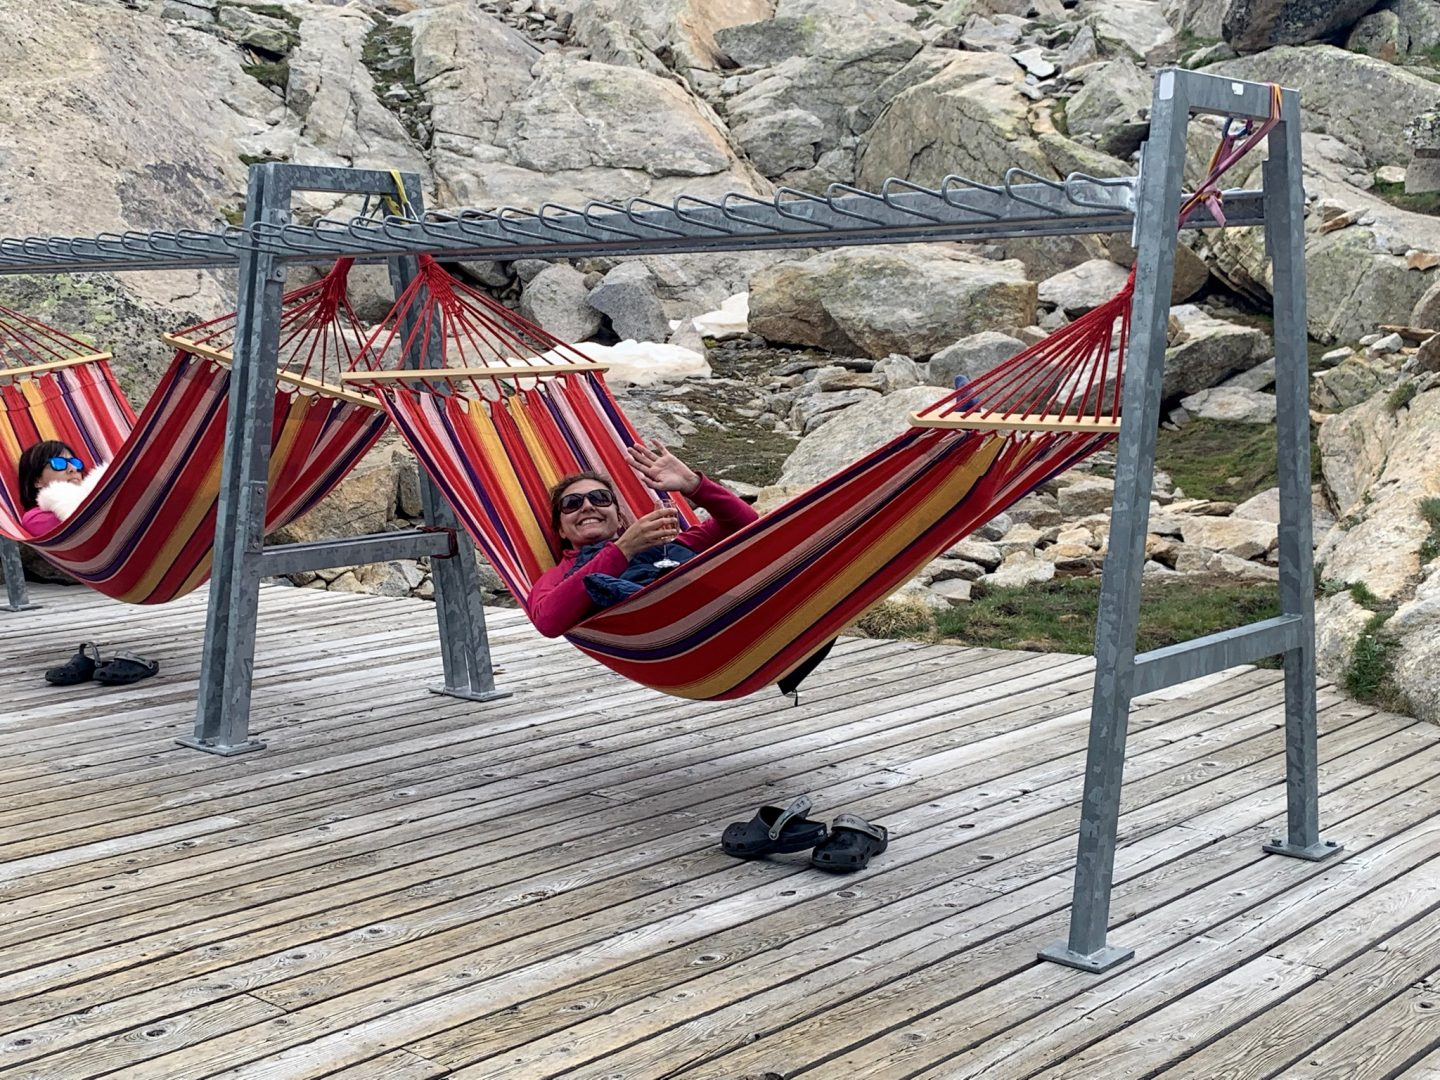 Nell on a brightly coloured hammock with a glass of wine in hand outside the Monte Rosa mountain hut